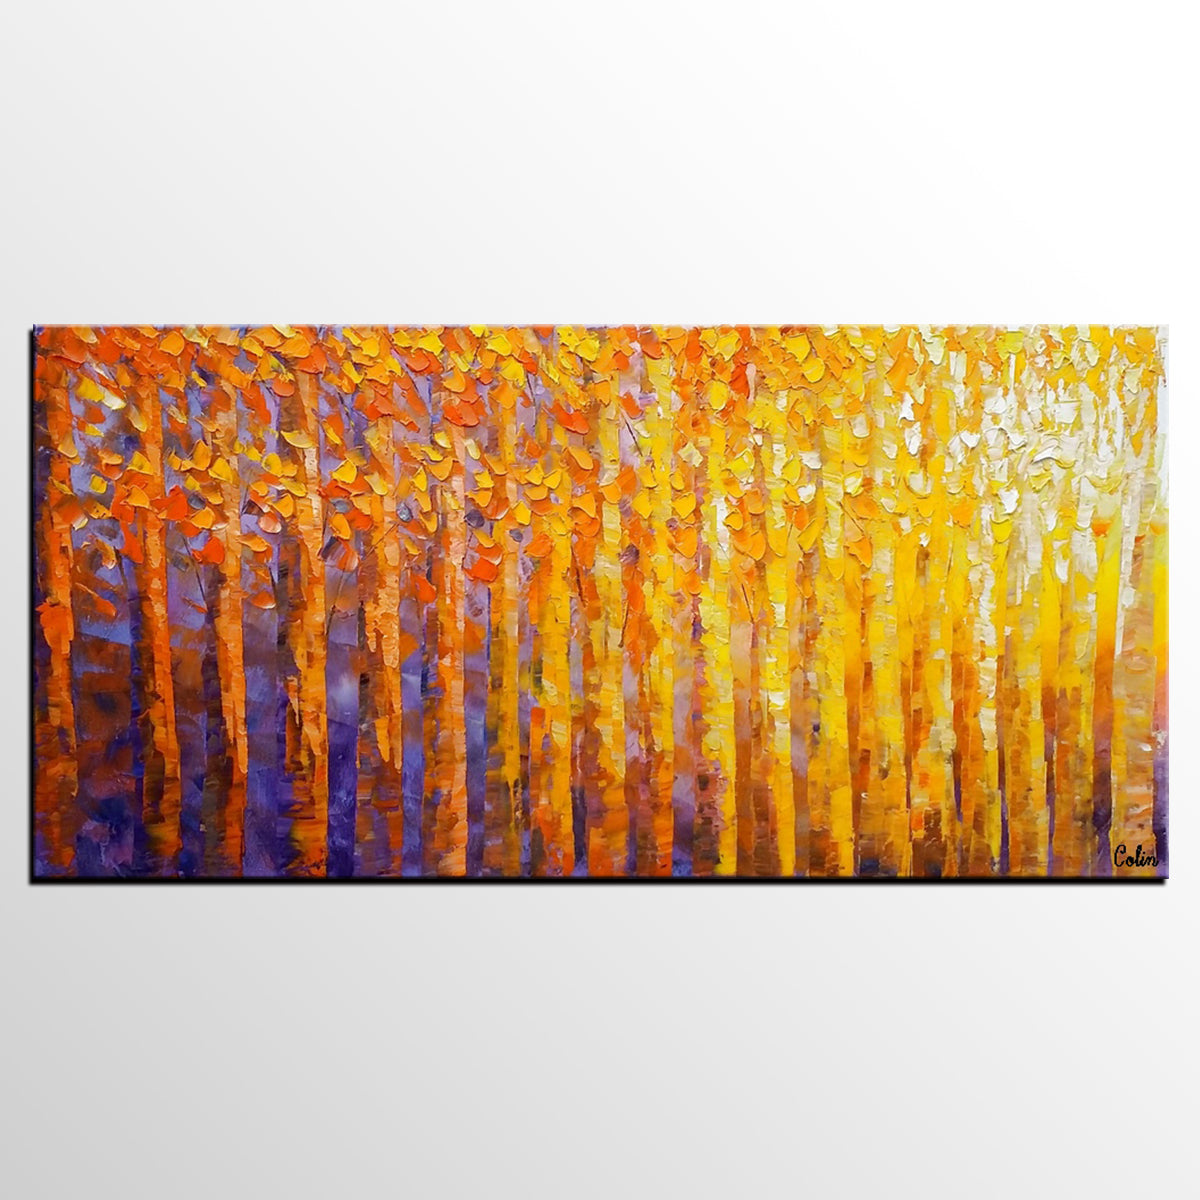 Abstract Landscape Painting, Oil Painting, Abstract Painting, Large Art, Canvas Art, Bedroom Wall Art, Canvas Painting, Birch Tree Painting